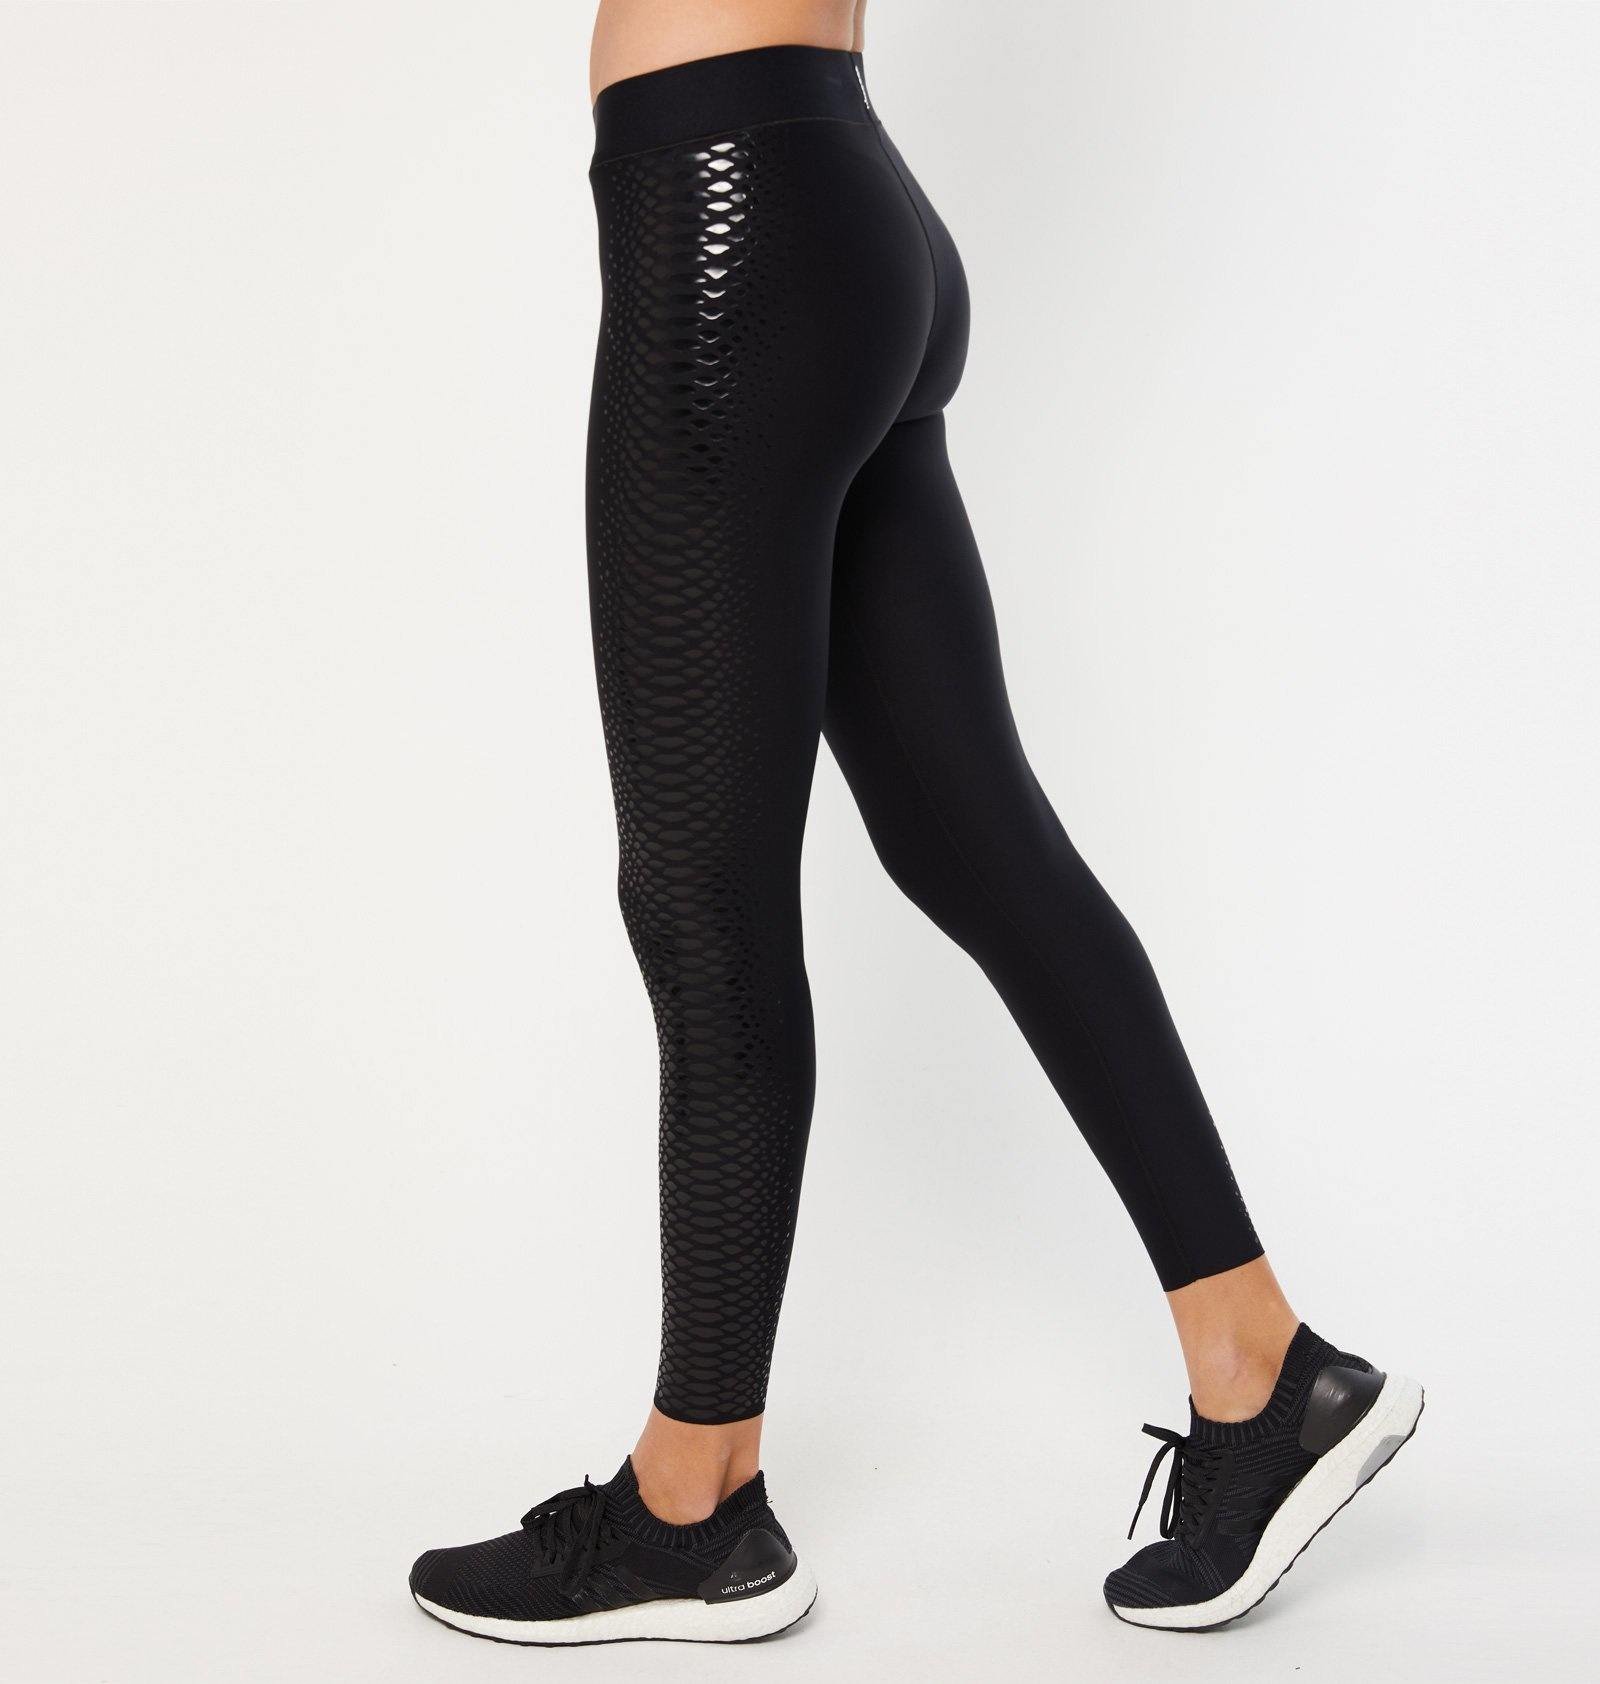 Ultracor Ultra High Boa Legging Nero Patent Nero